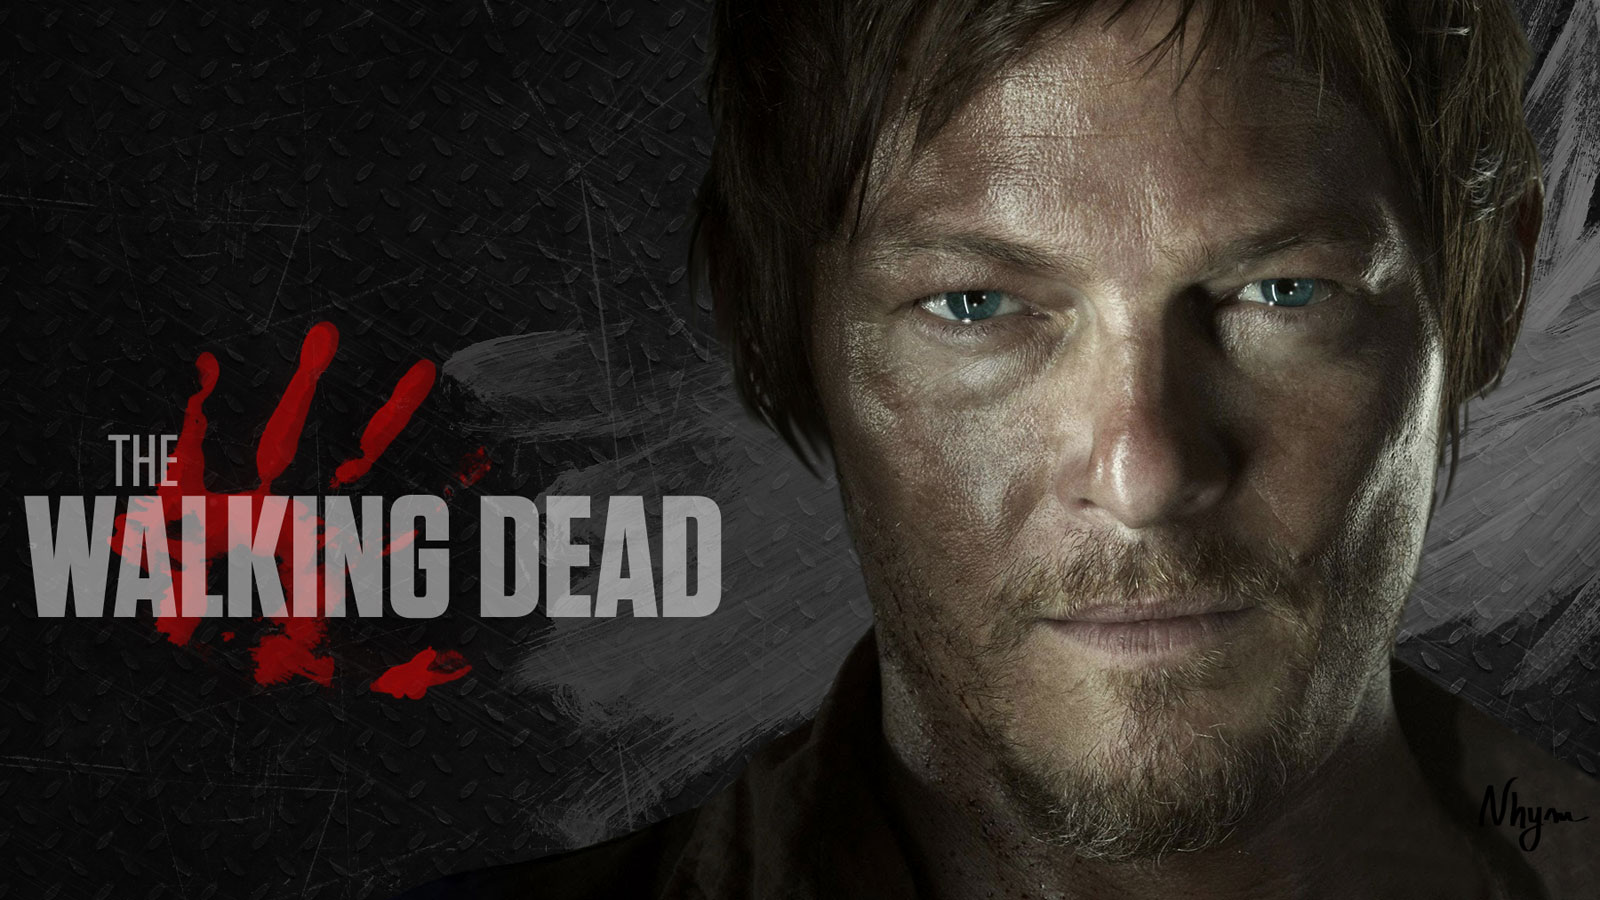 The Walking Dead will introduce gay character - Metro Weekly